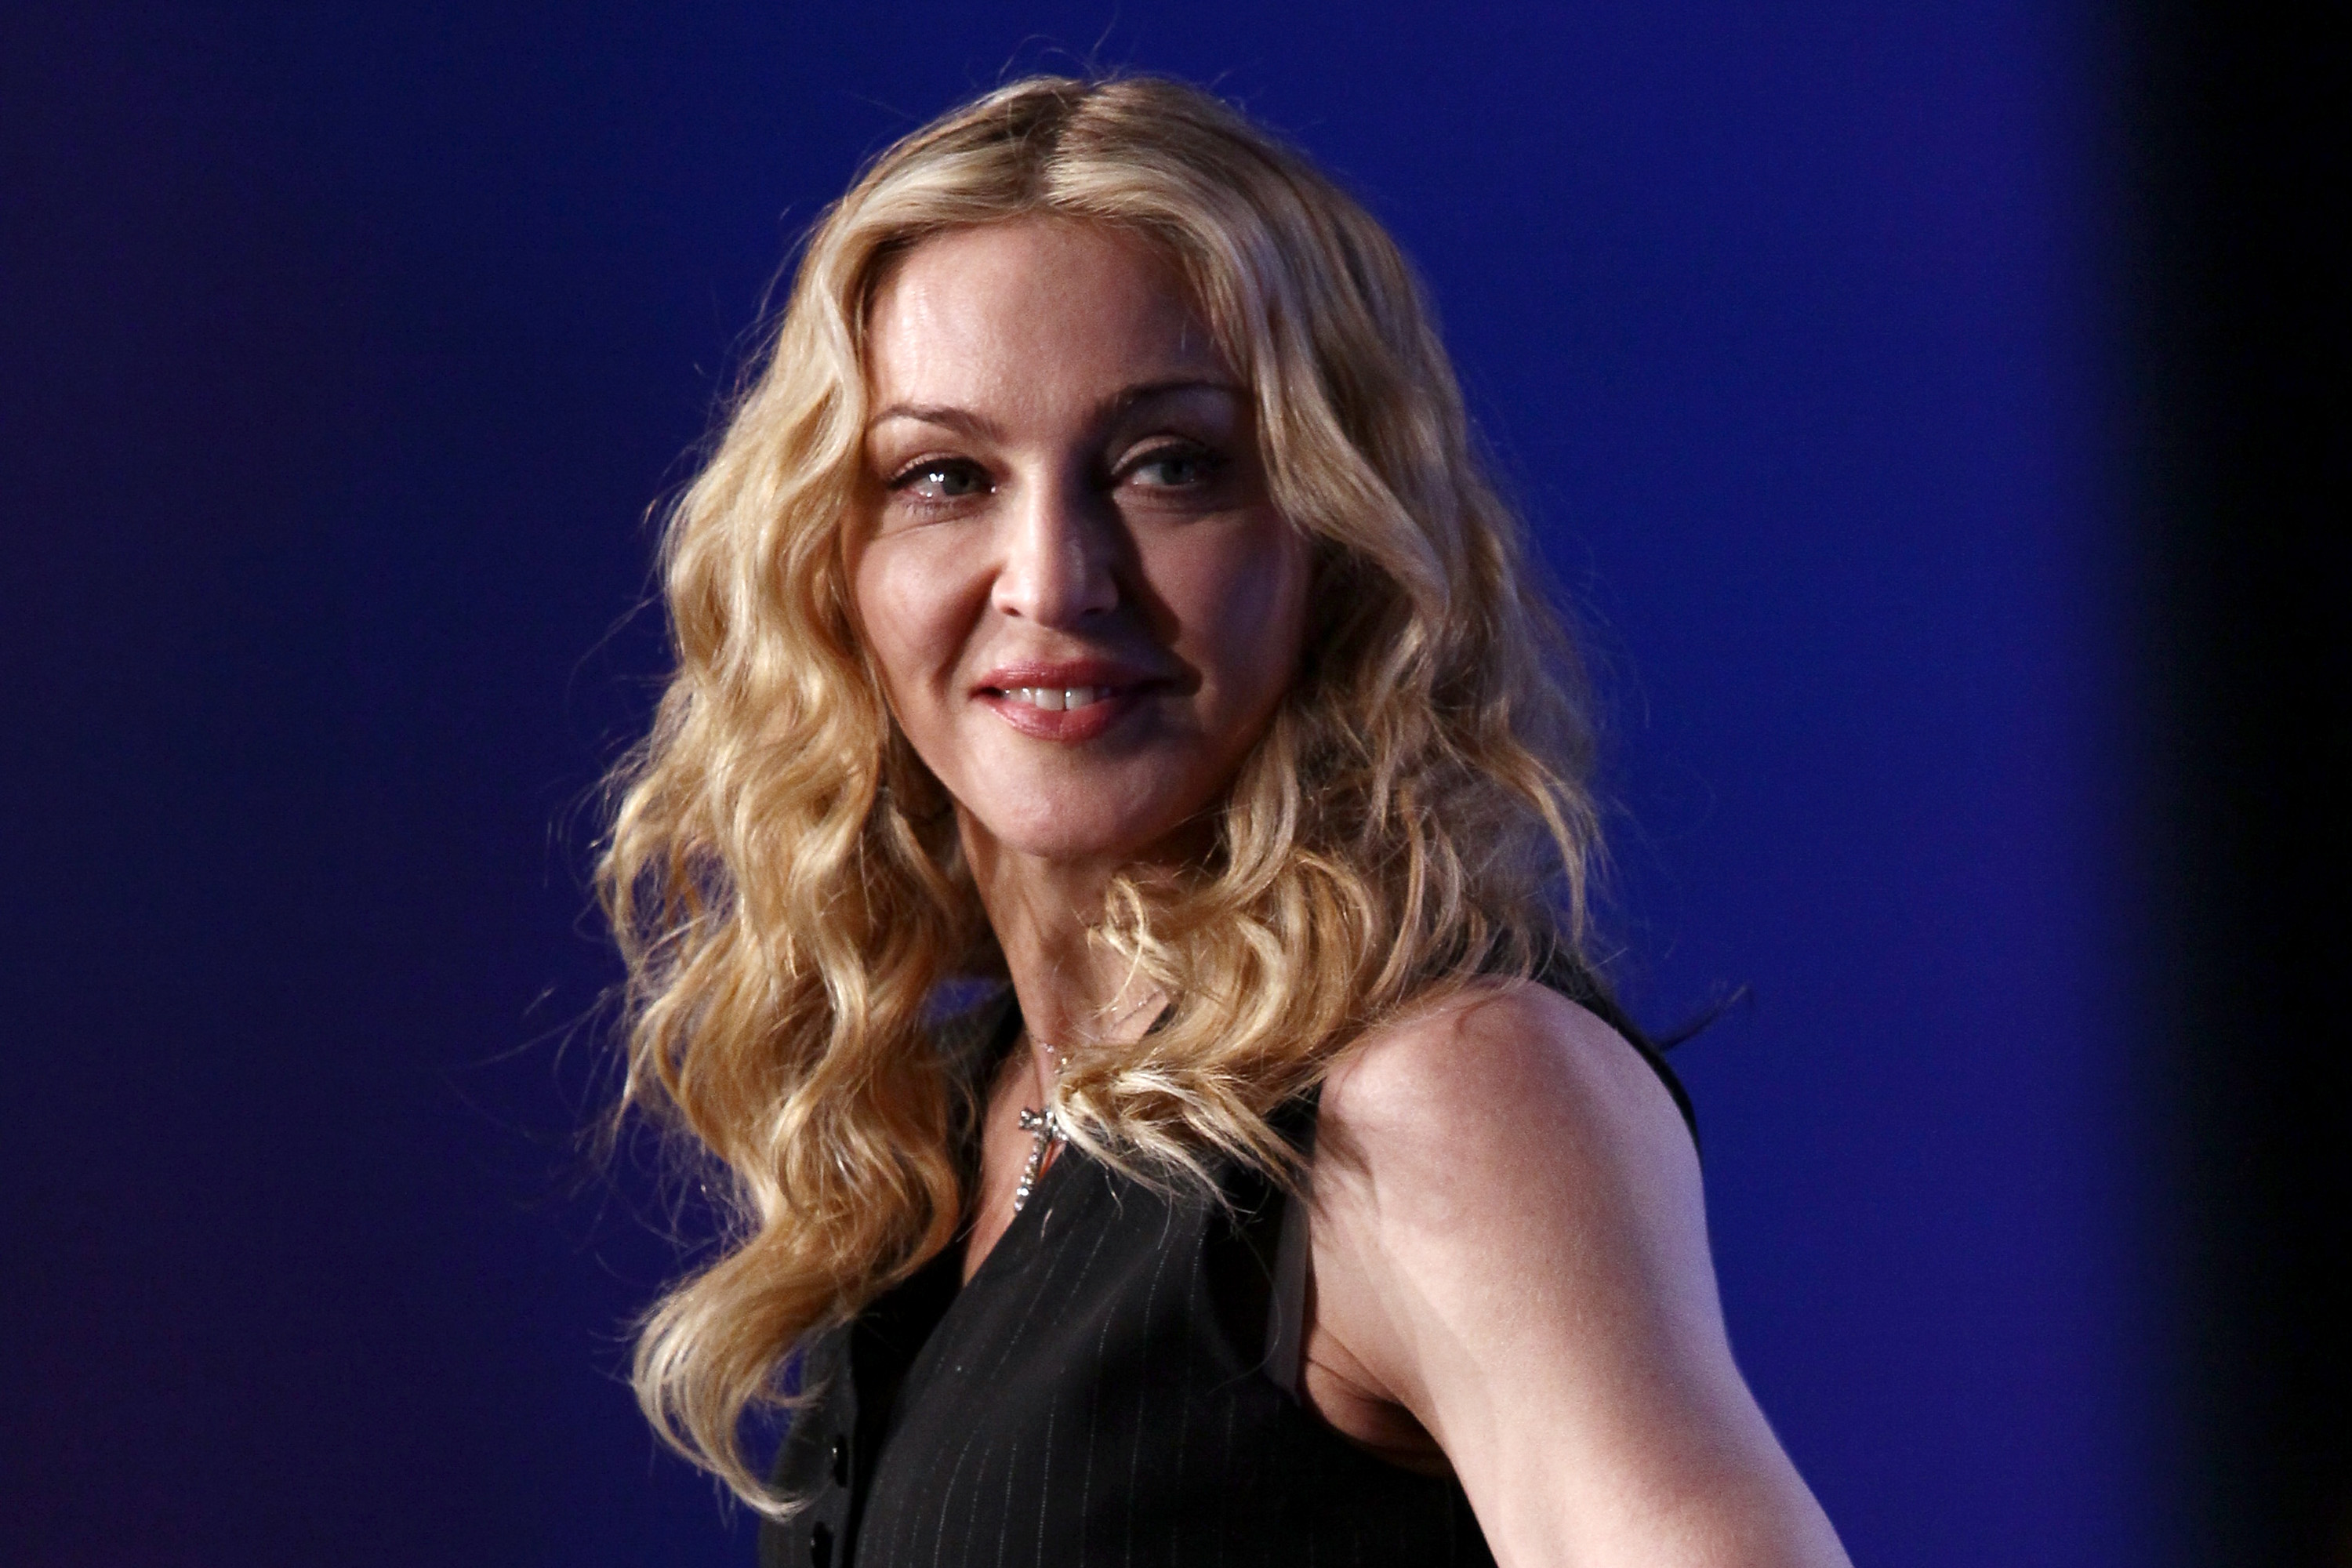 'Only I can tell my story': Madonna doesn't sound happy they're making a movie about her